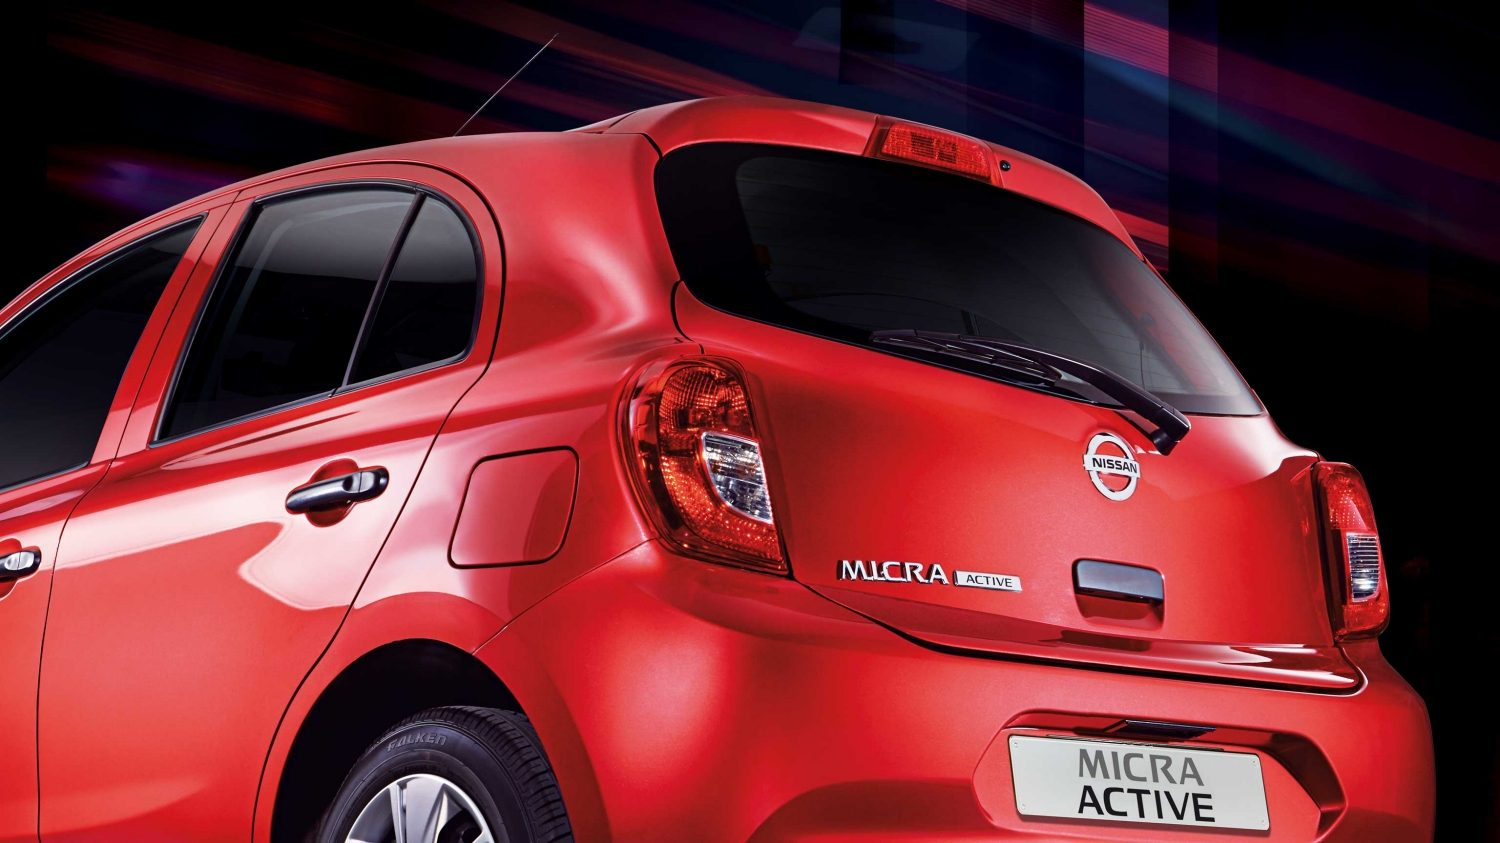 Stop Lamps - Micra Active